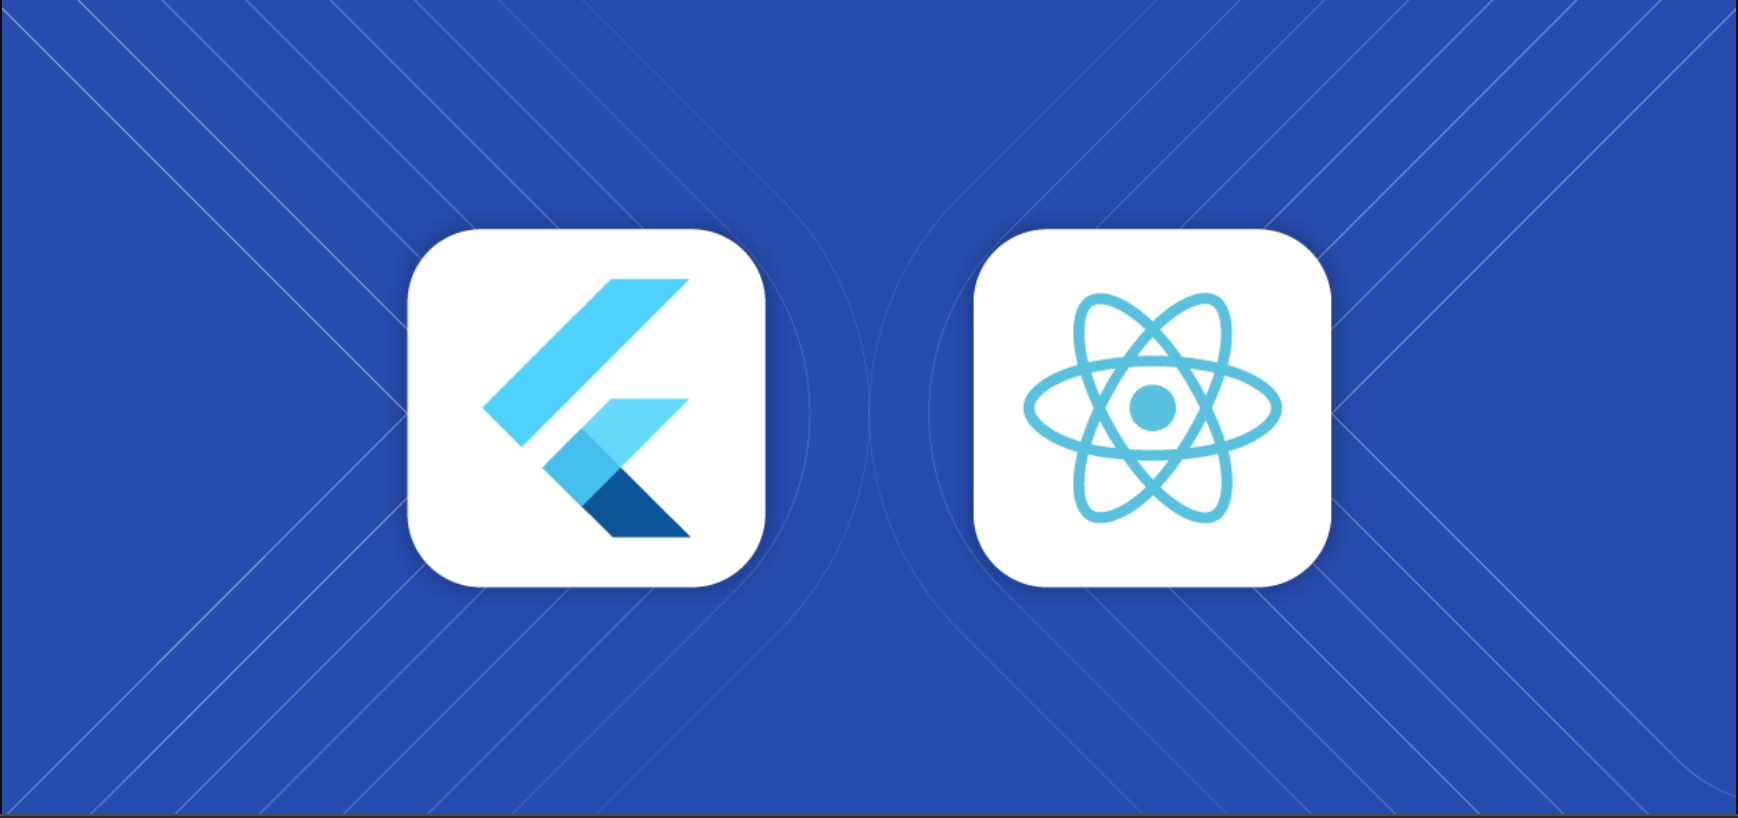 react and flutter